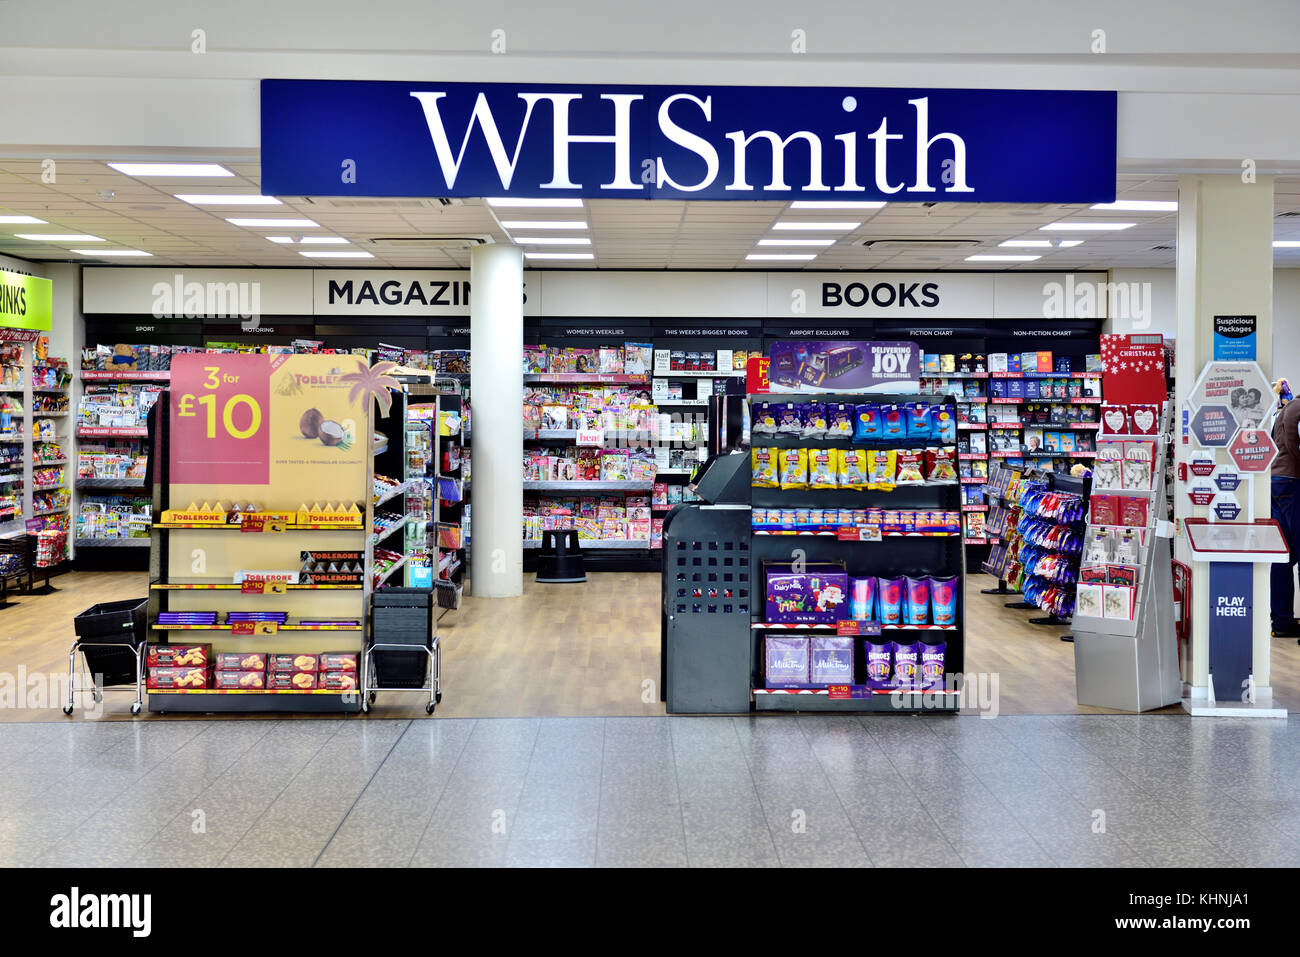 WH Smith newsagents store with sign in airport - Stock Image